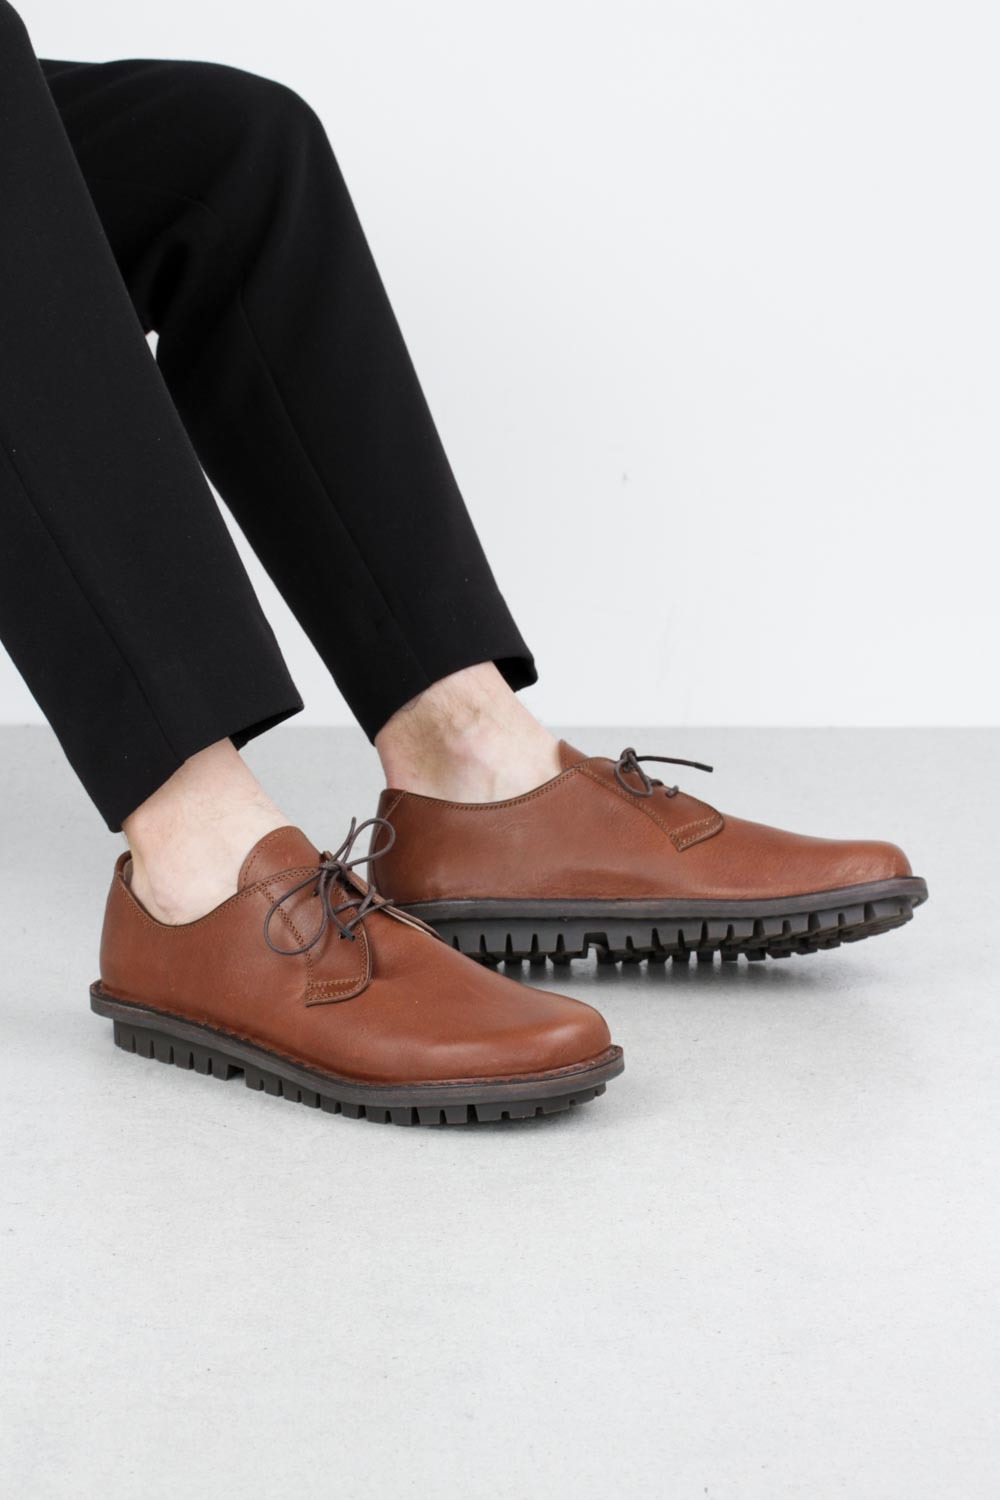 Trippen derby brown waw tr smg leathershoe